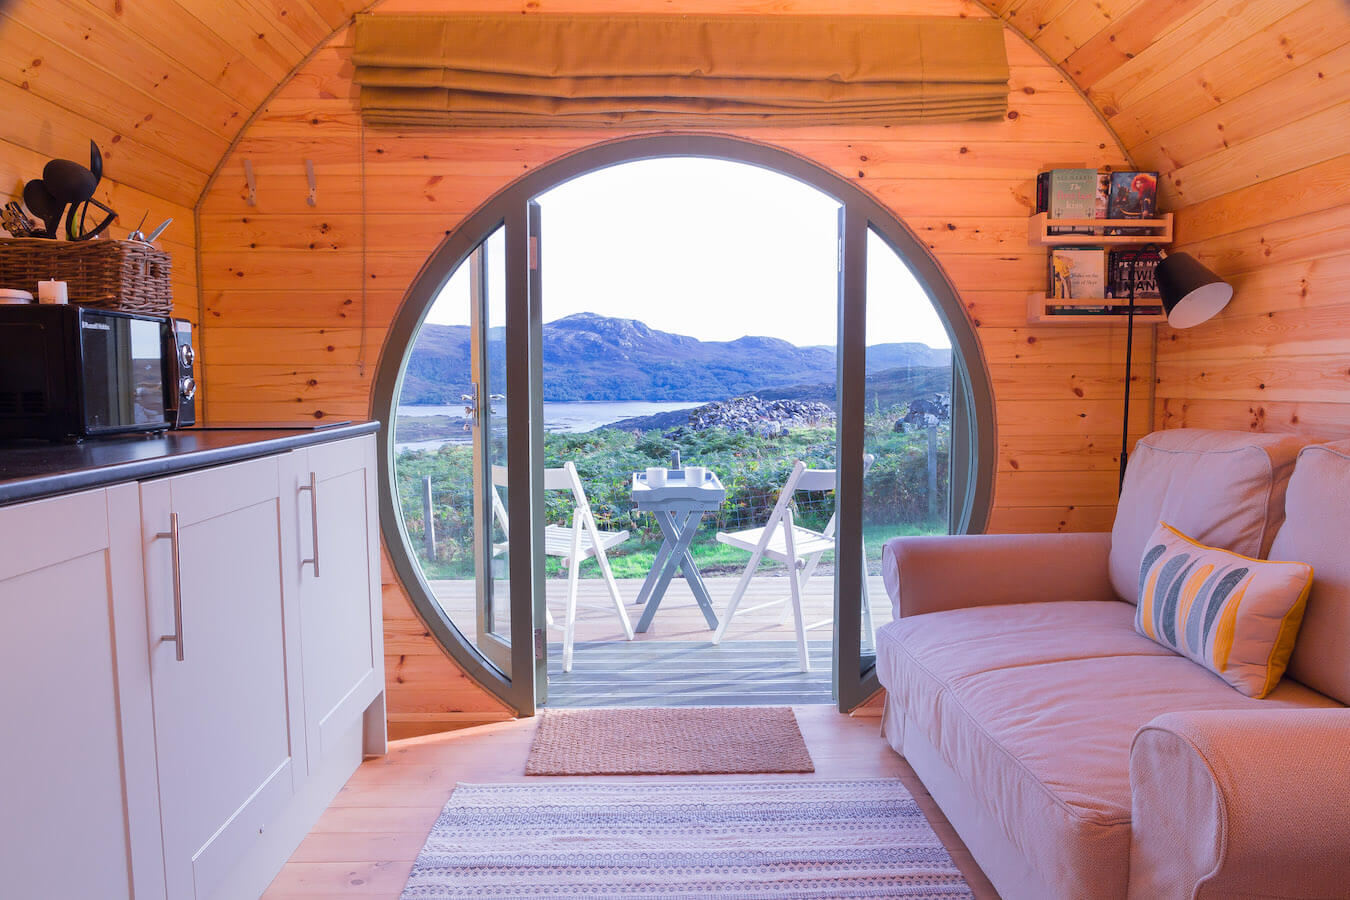 Explore the cosiest bothies in the Scottish highlands